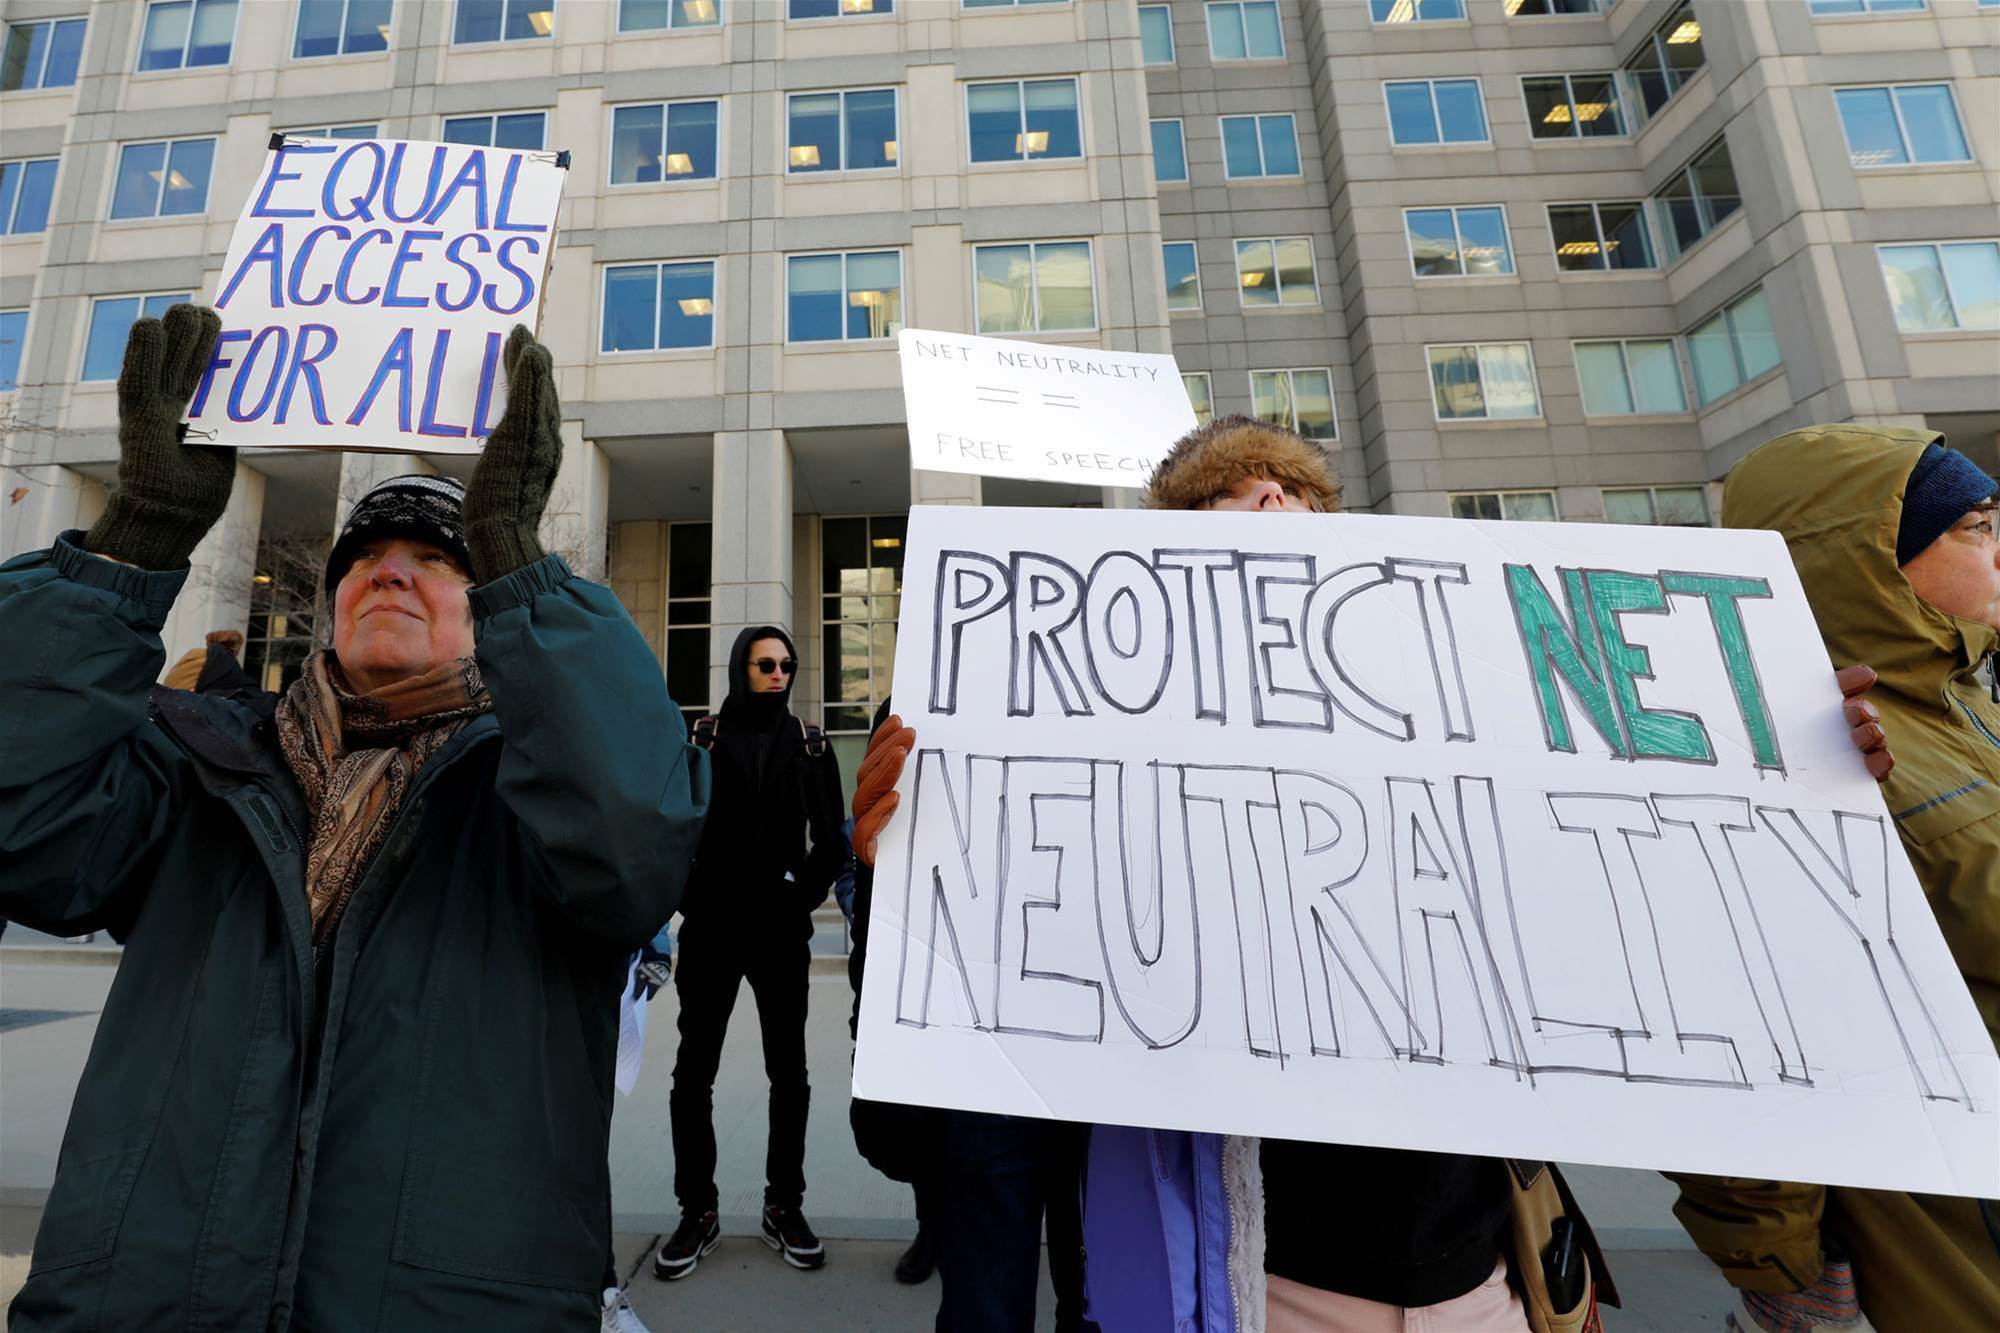 US House approves net neutrality bill but legislation faces long odds